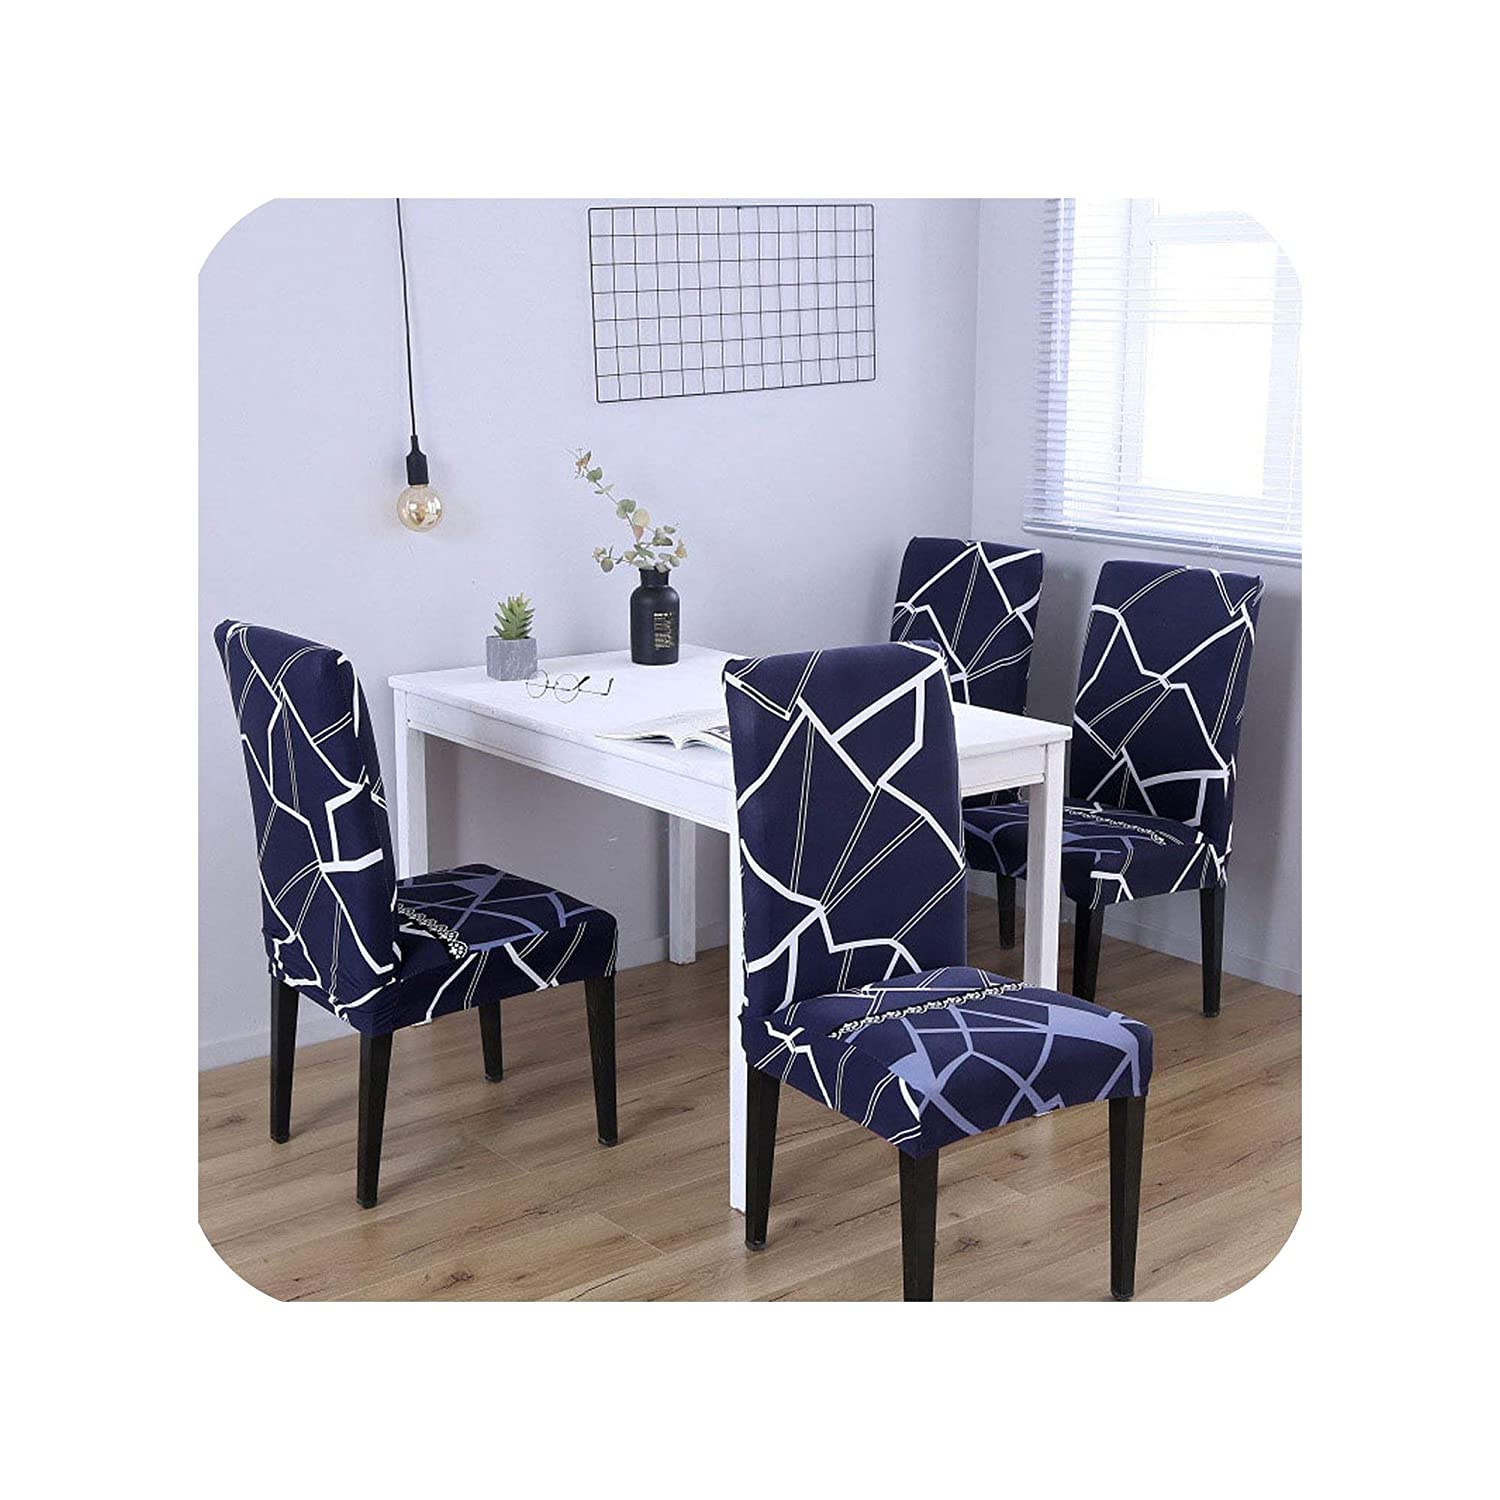 Wenzi-day 4/5/6 Pieces Printed Chair Cover Washable Removable Big Elastic Seat Covers Slipcovers Stretch for Banquet Hotel Dining Room,Color 08,5 Pieces